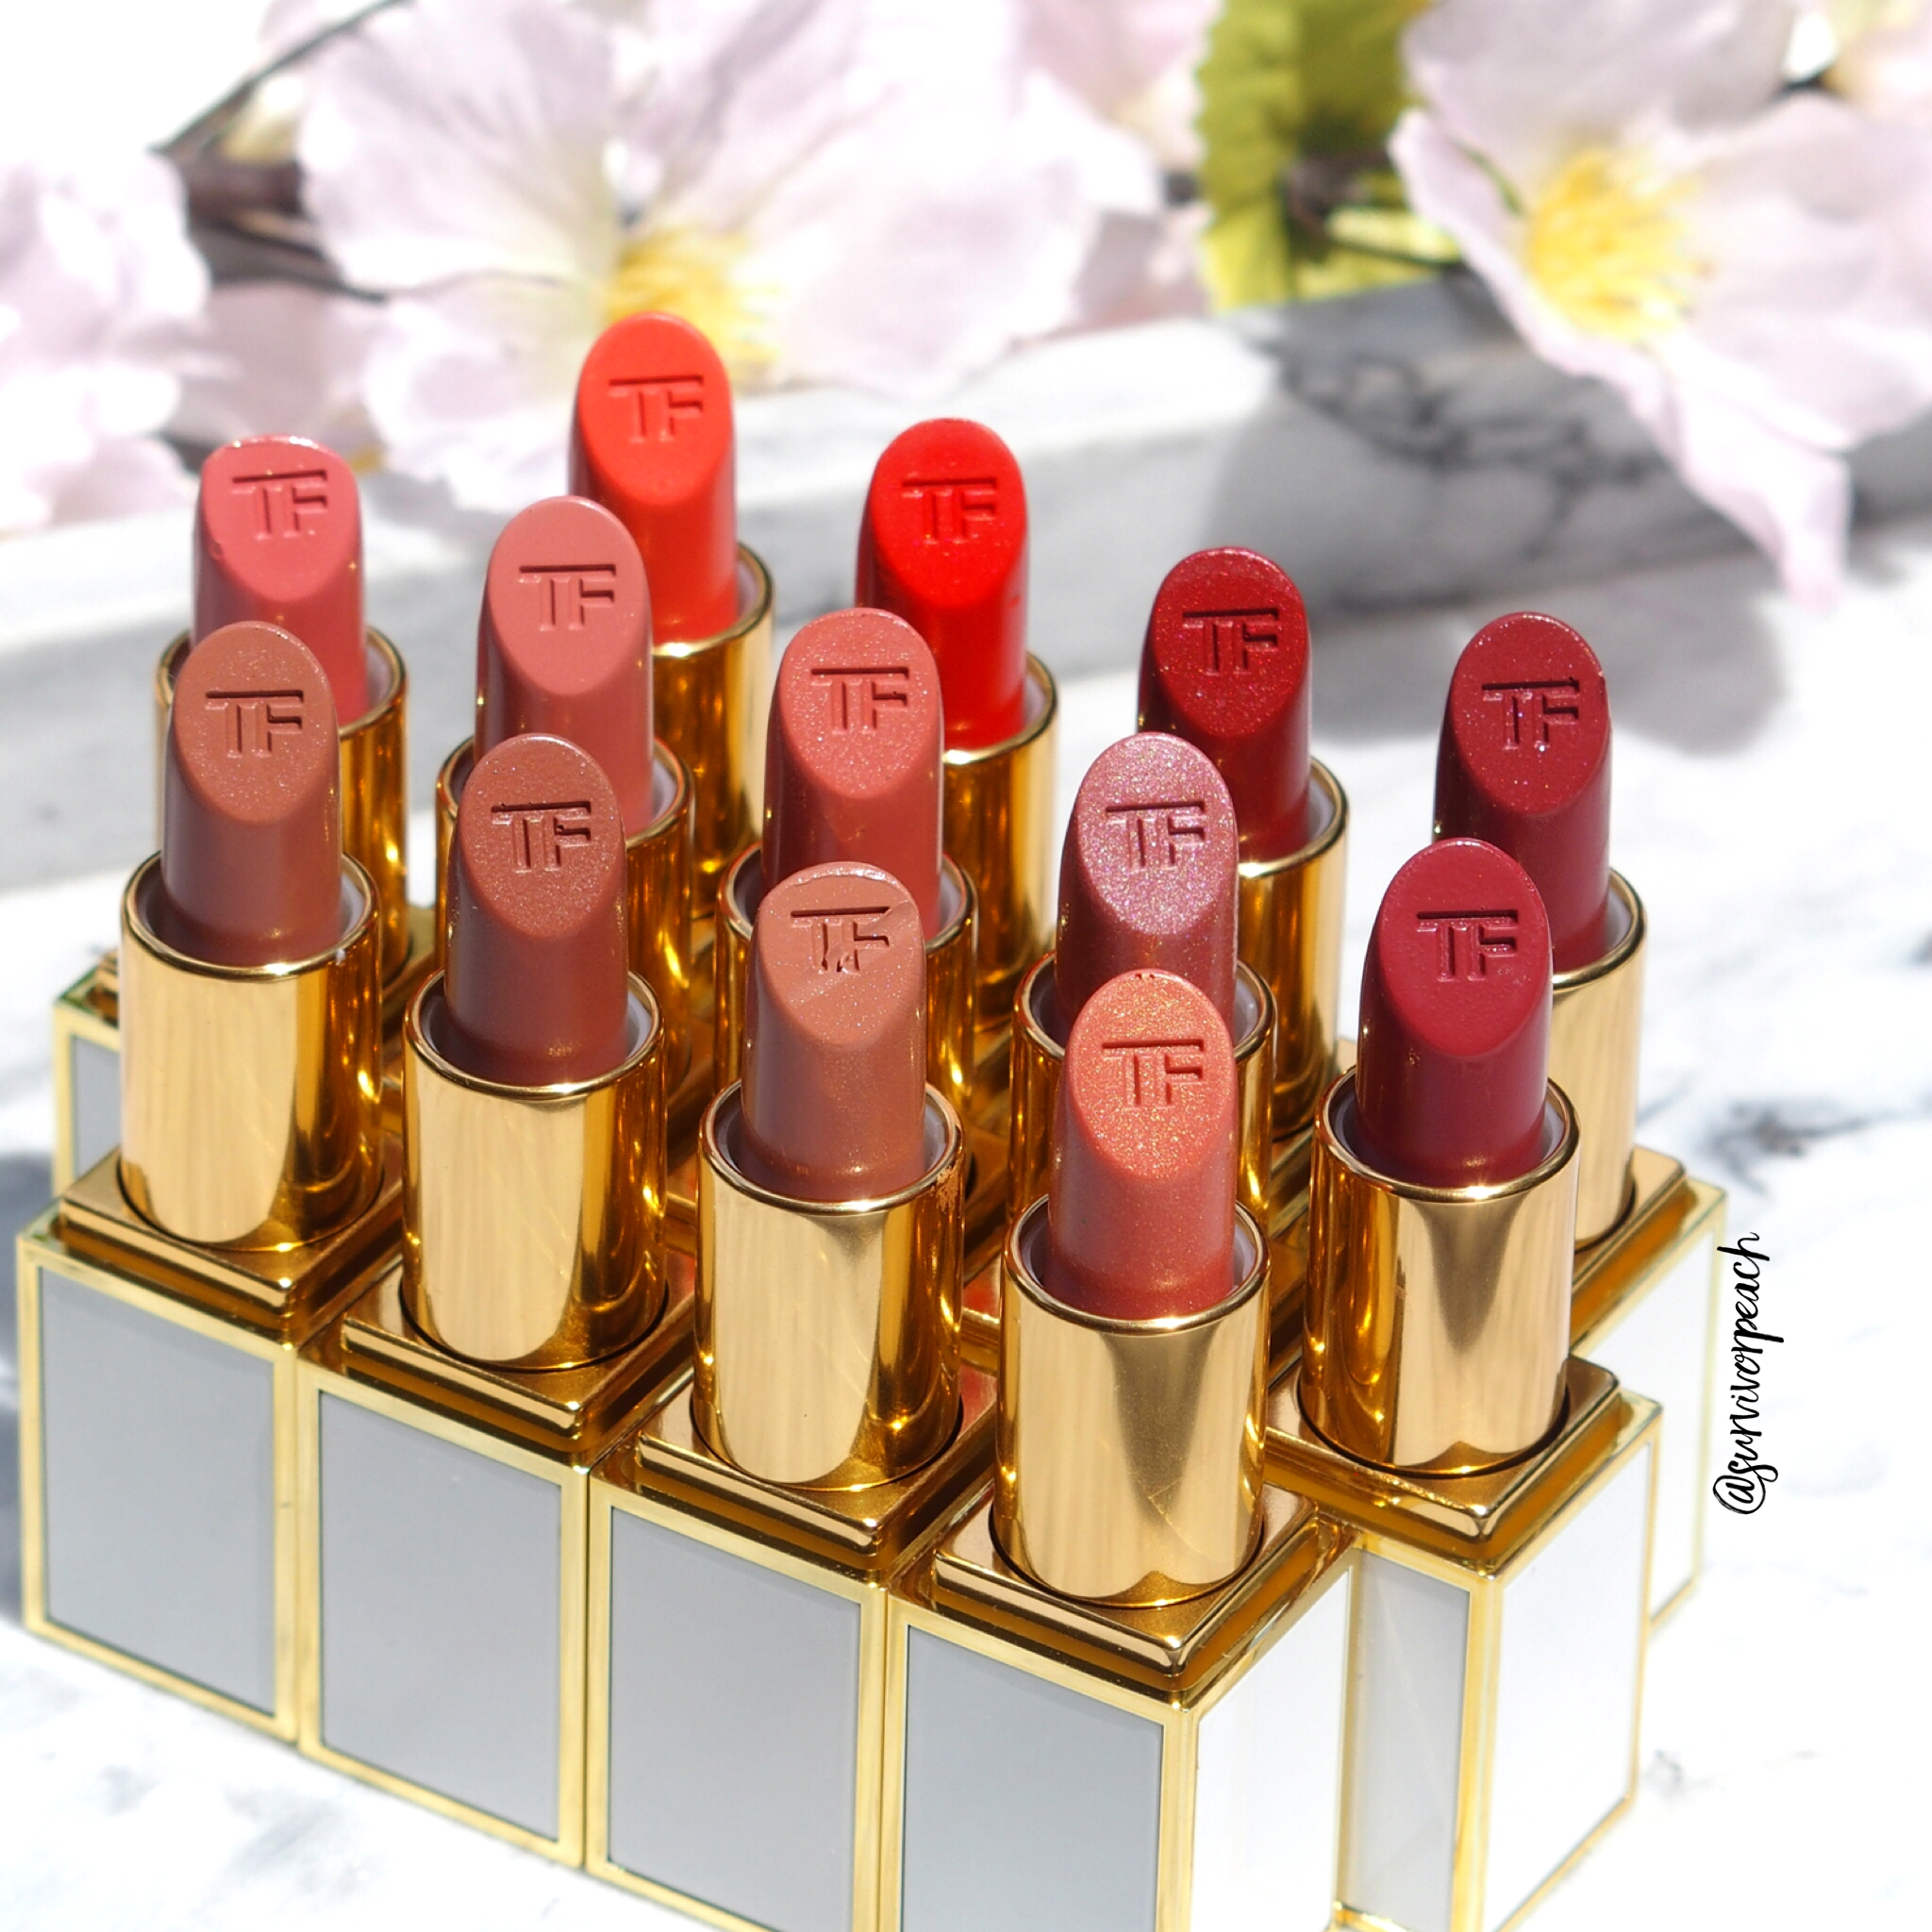 Tomford Lips and Girls